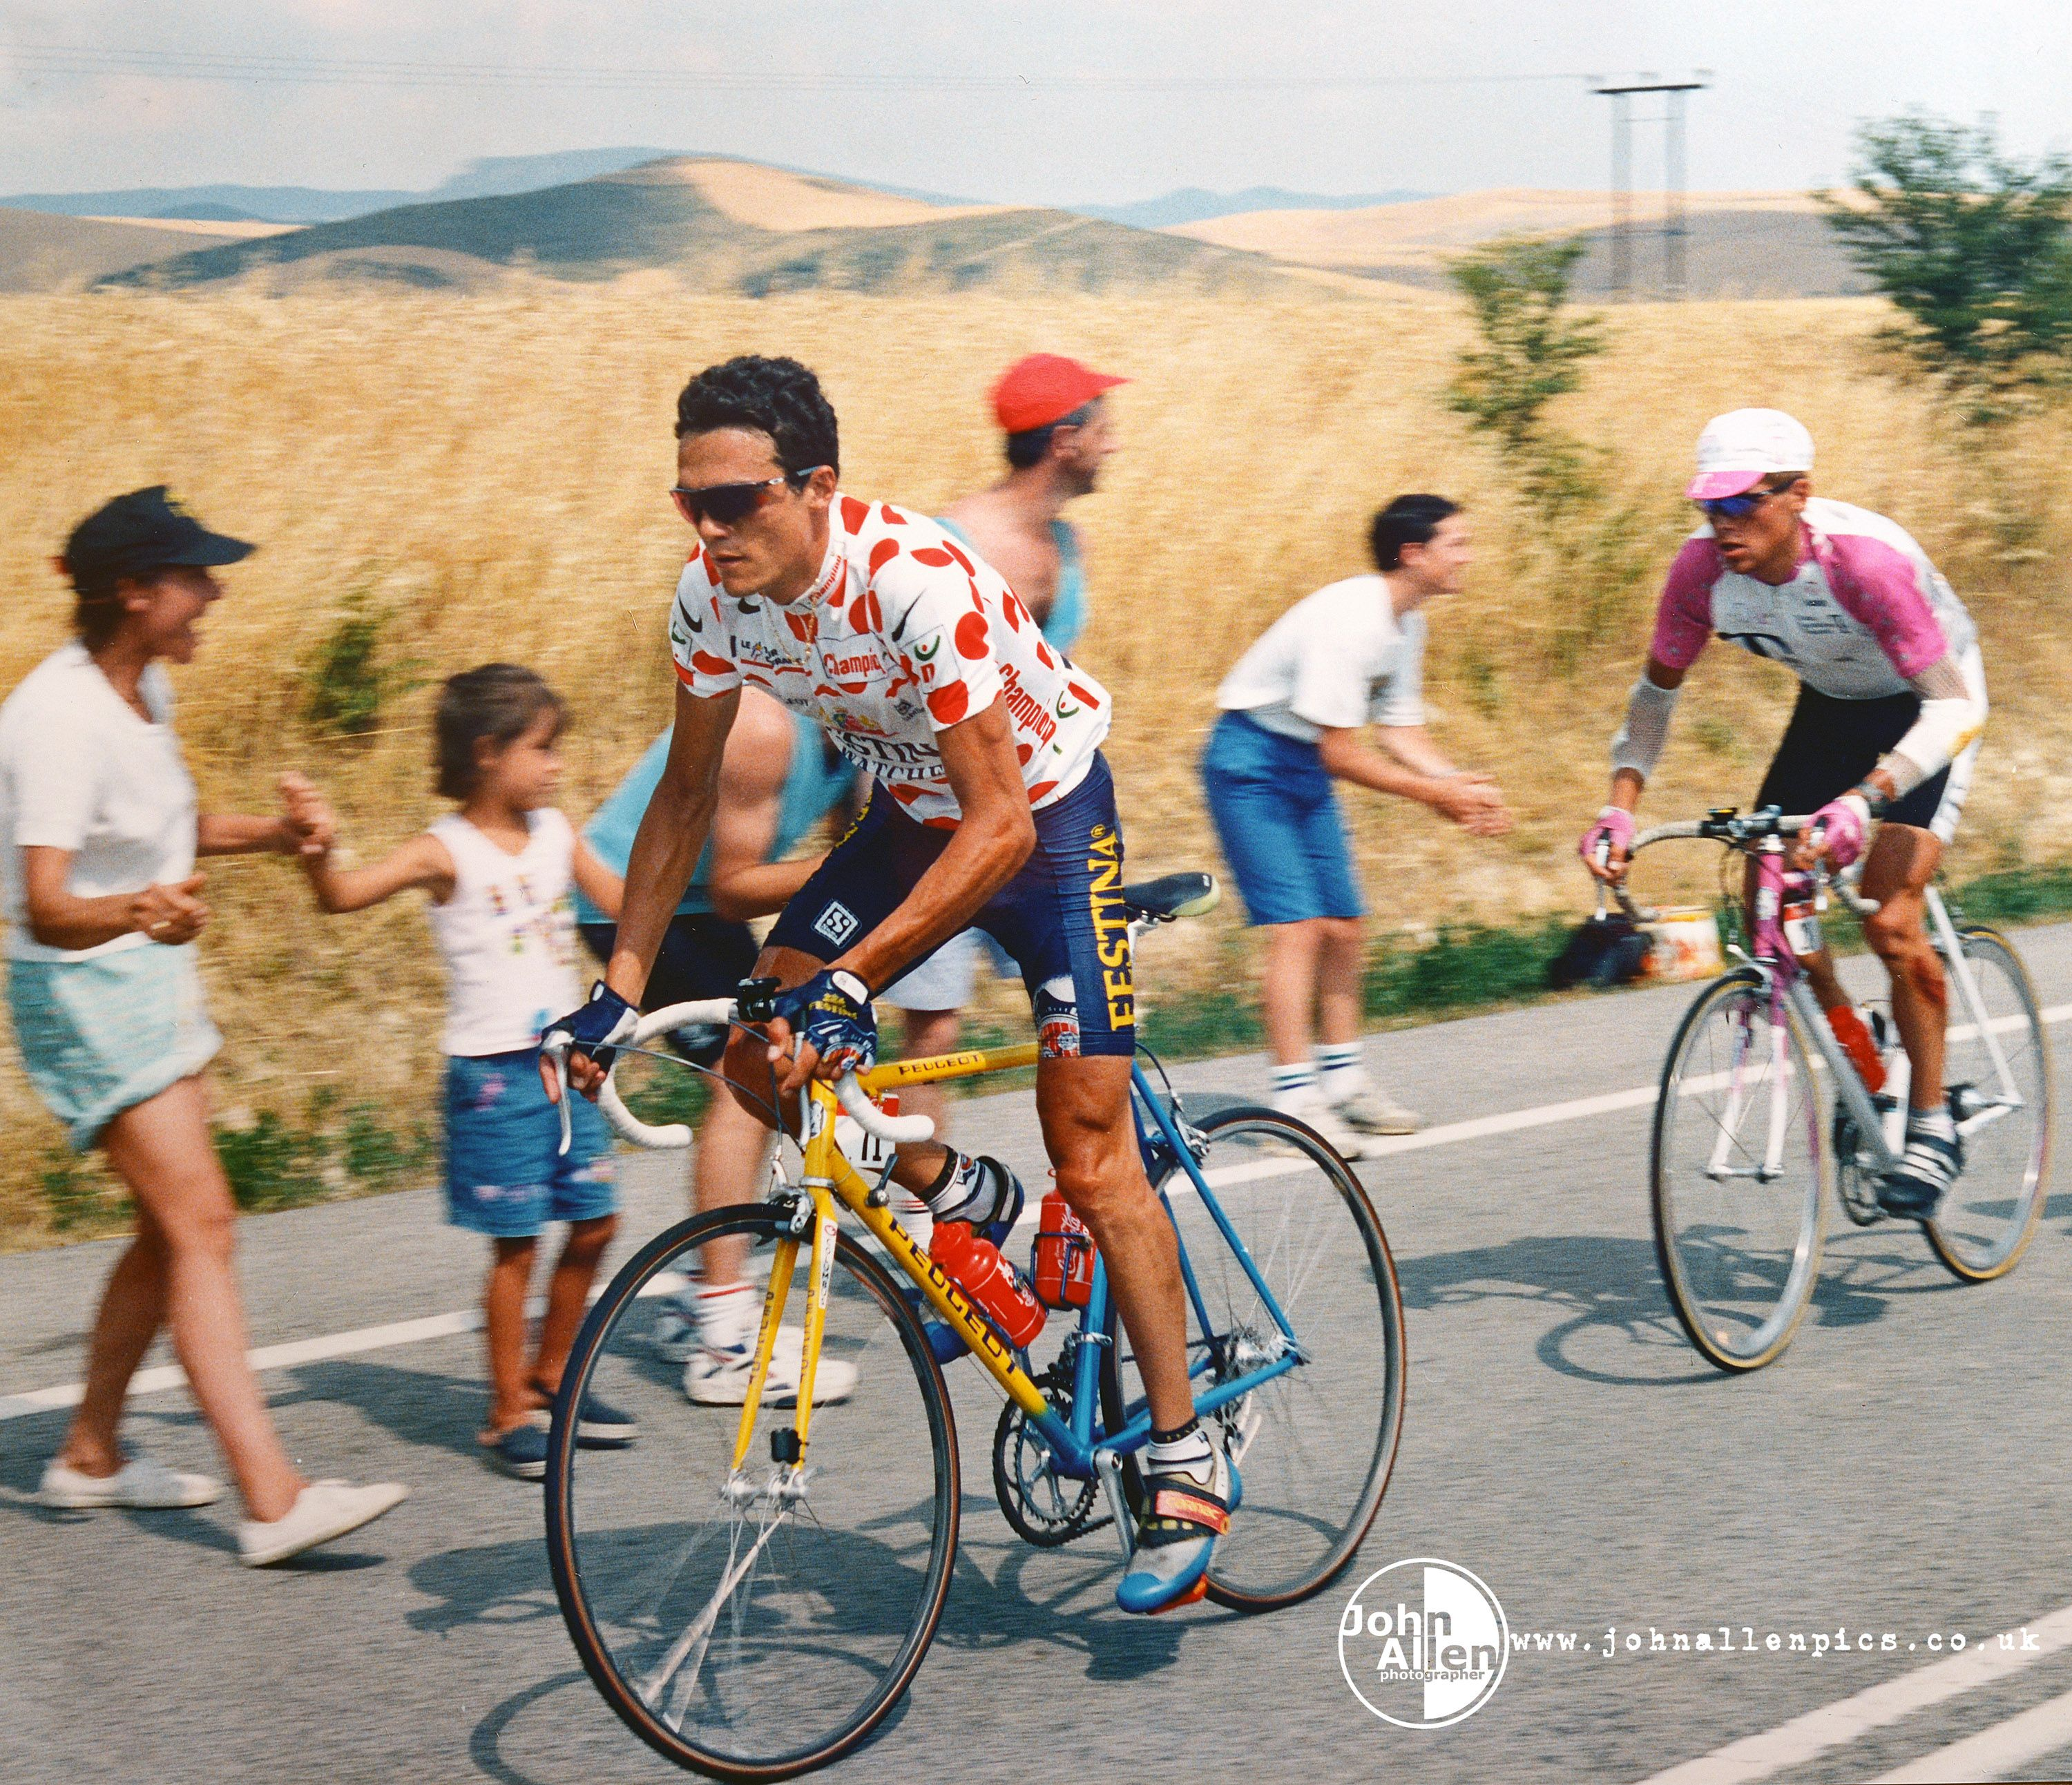 Tour de France 1996, stage to Pamplona. Richard Virenque